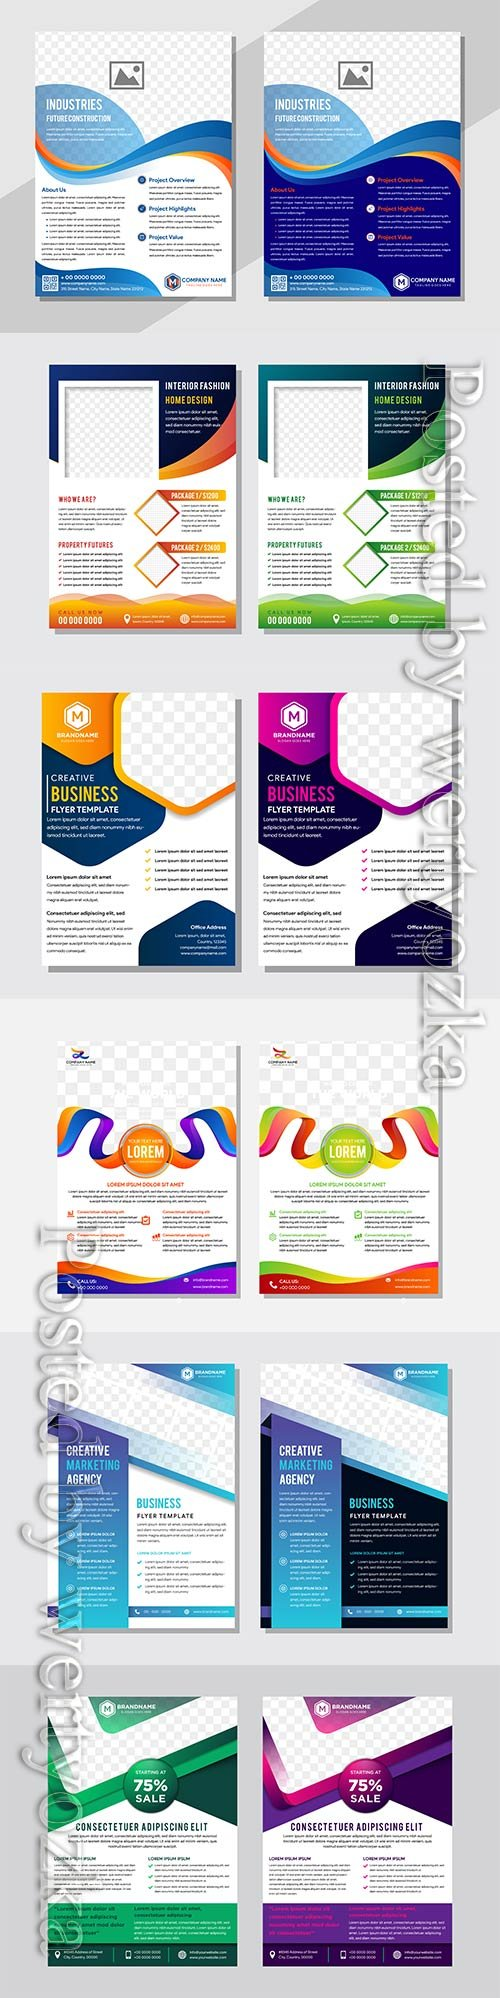 Business vector design template for brochure, flyer